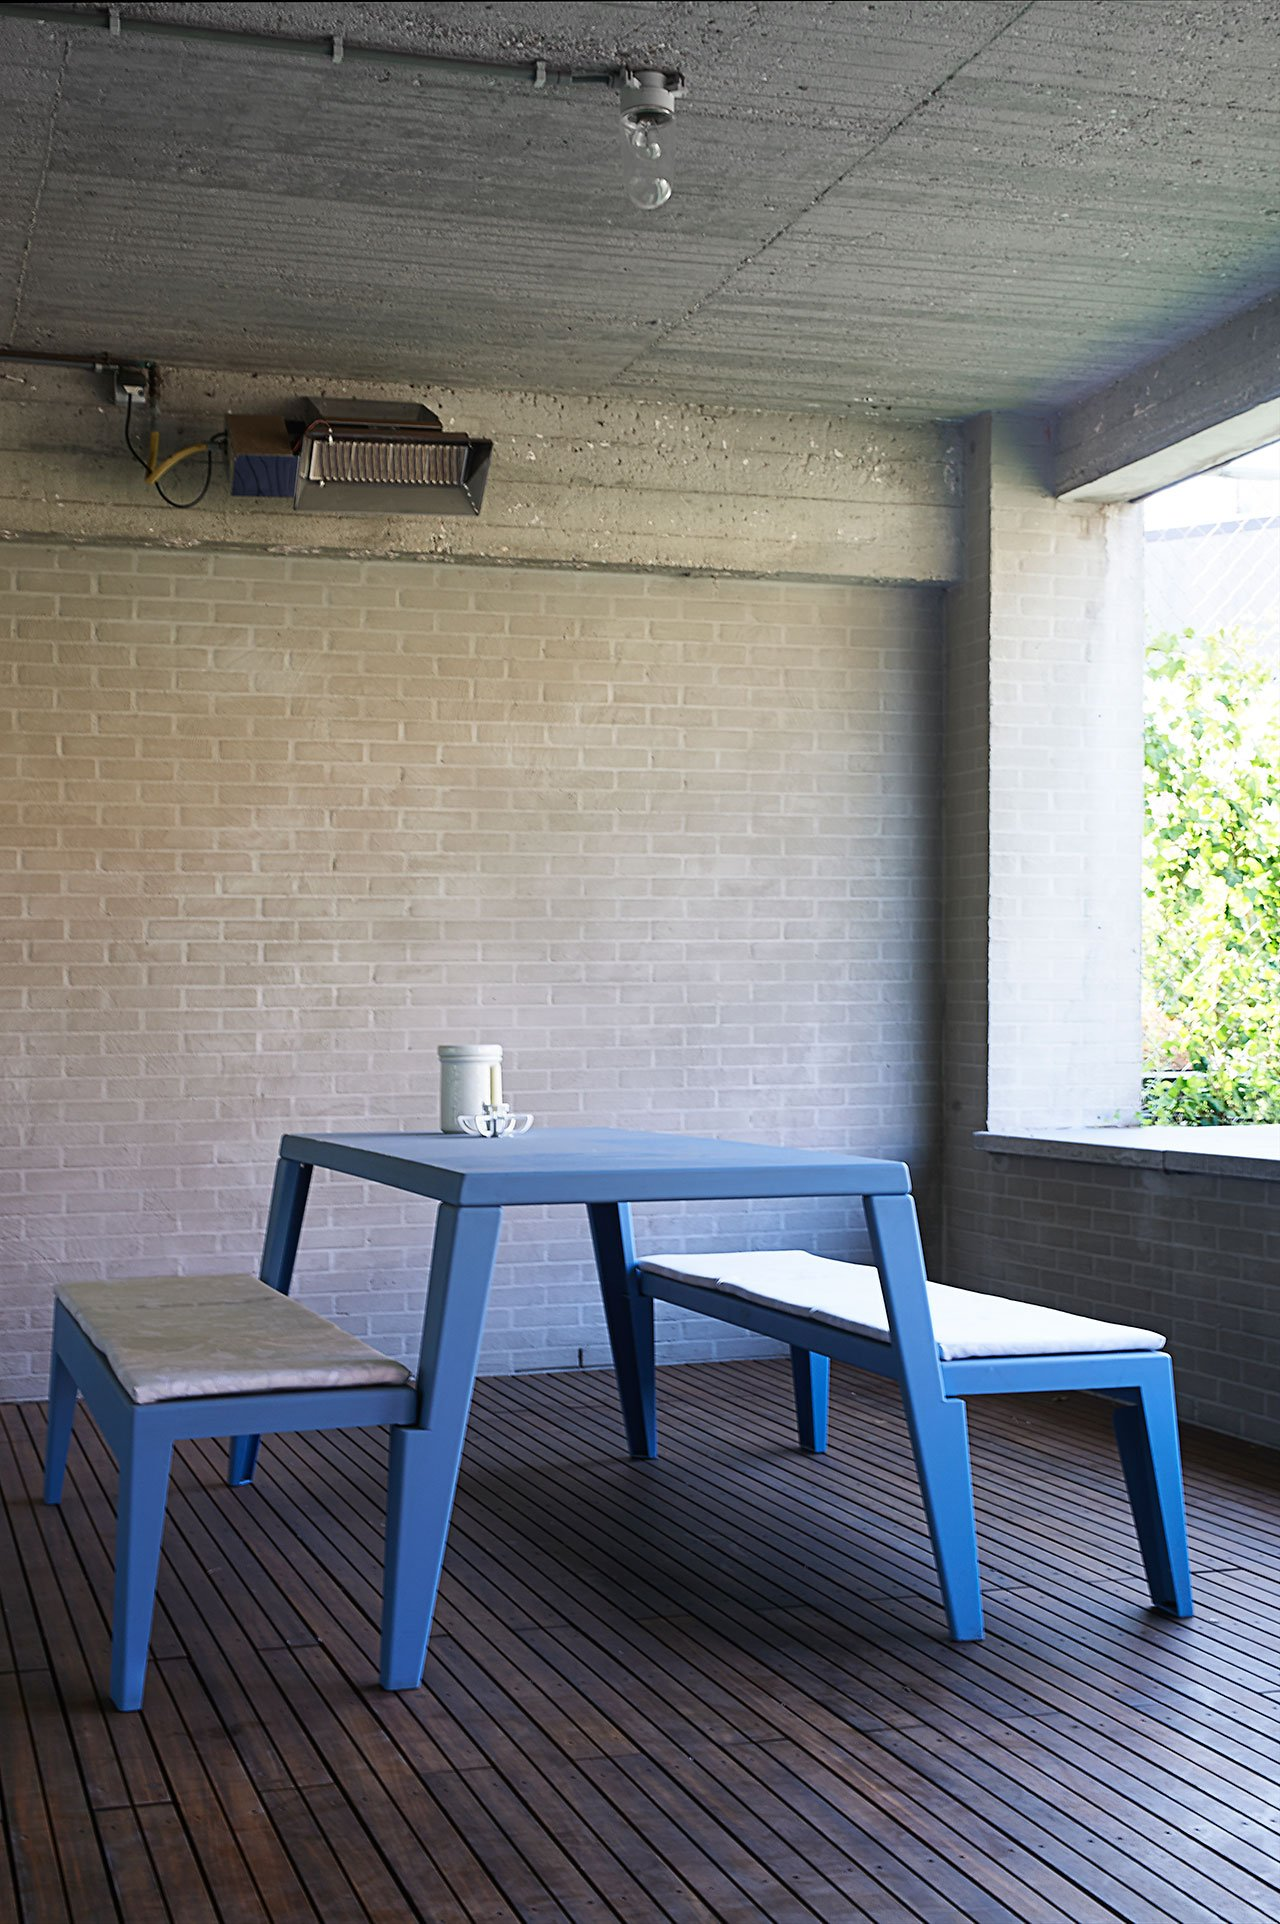 Terrace next to kitchen. Outdoor table Etcetera, Bram Boo for FELD, upholstered with Firmship Fabric by Studio Job. Silhouette Sconce, Studio Job, 2005. Pot, Royal Tichelaar Makkum, Studio Job, 2009. Photo by Dennis Brandsma.